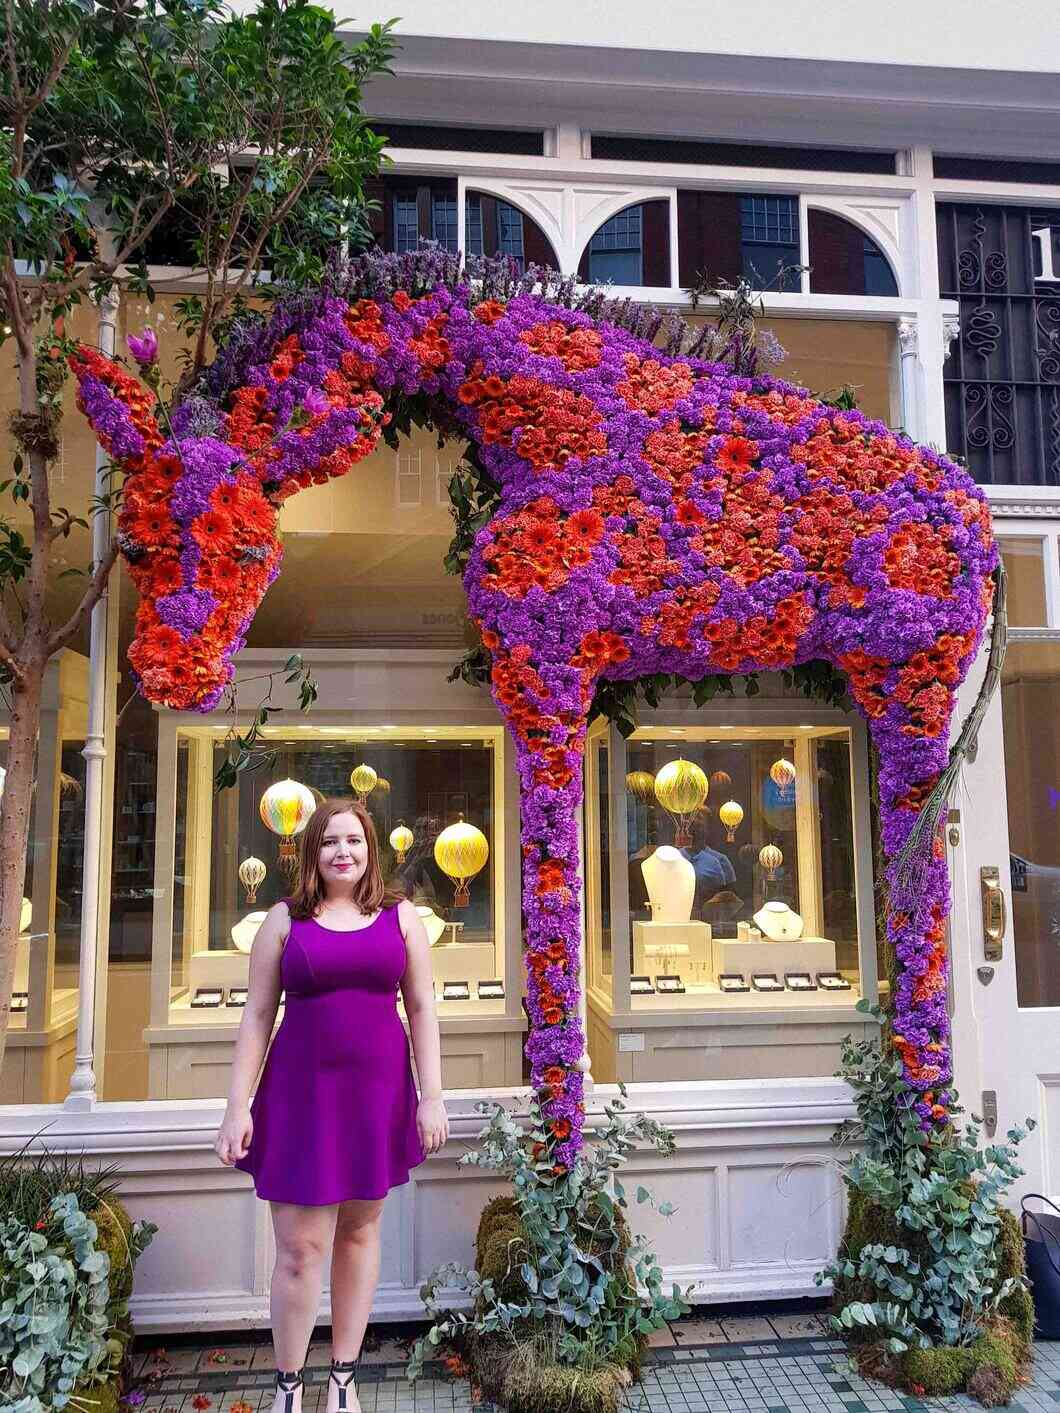 Chelsea in Bloom is a wonderful time to walk around seeing all the shops decked out in flower displays.